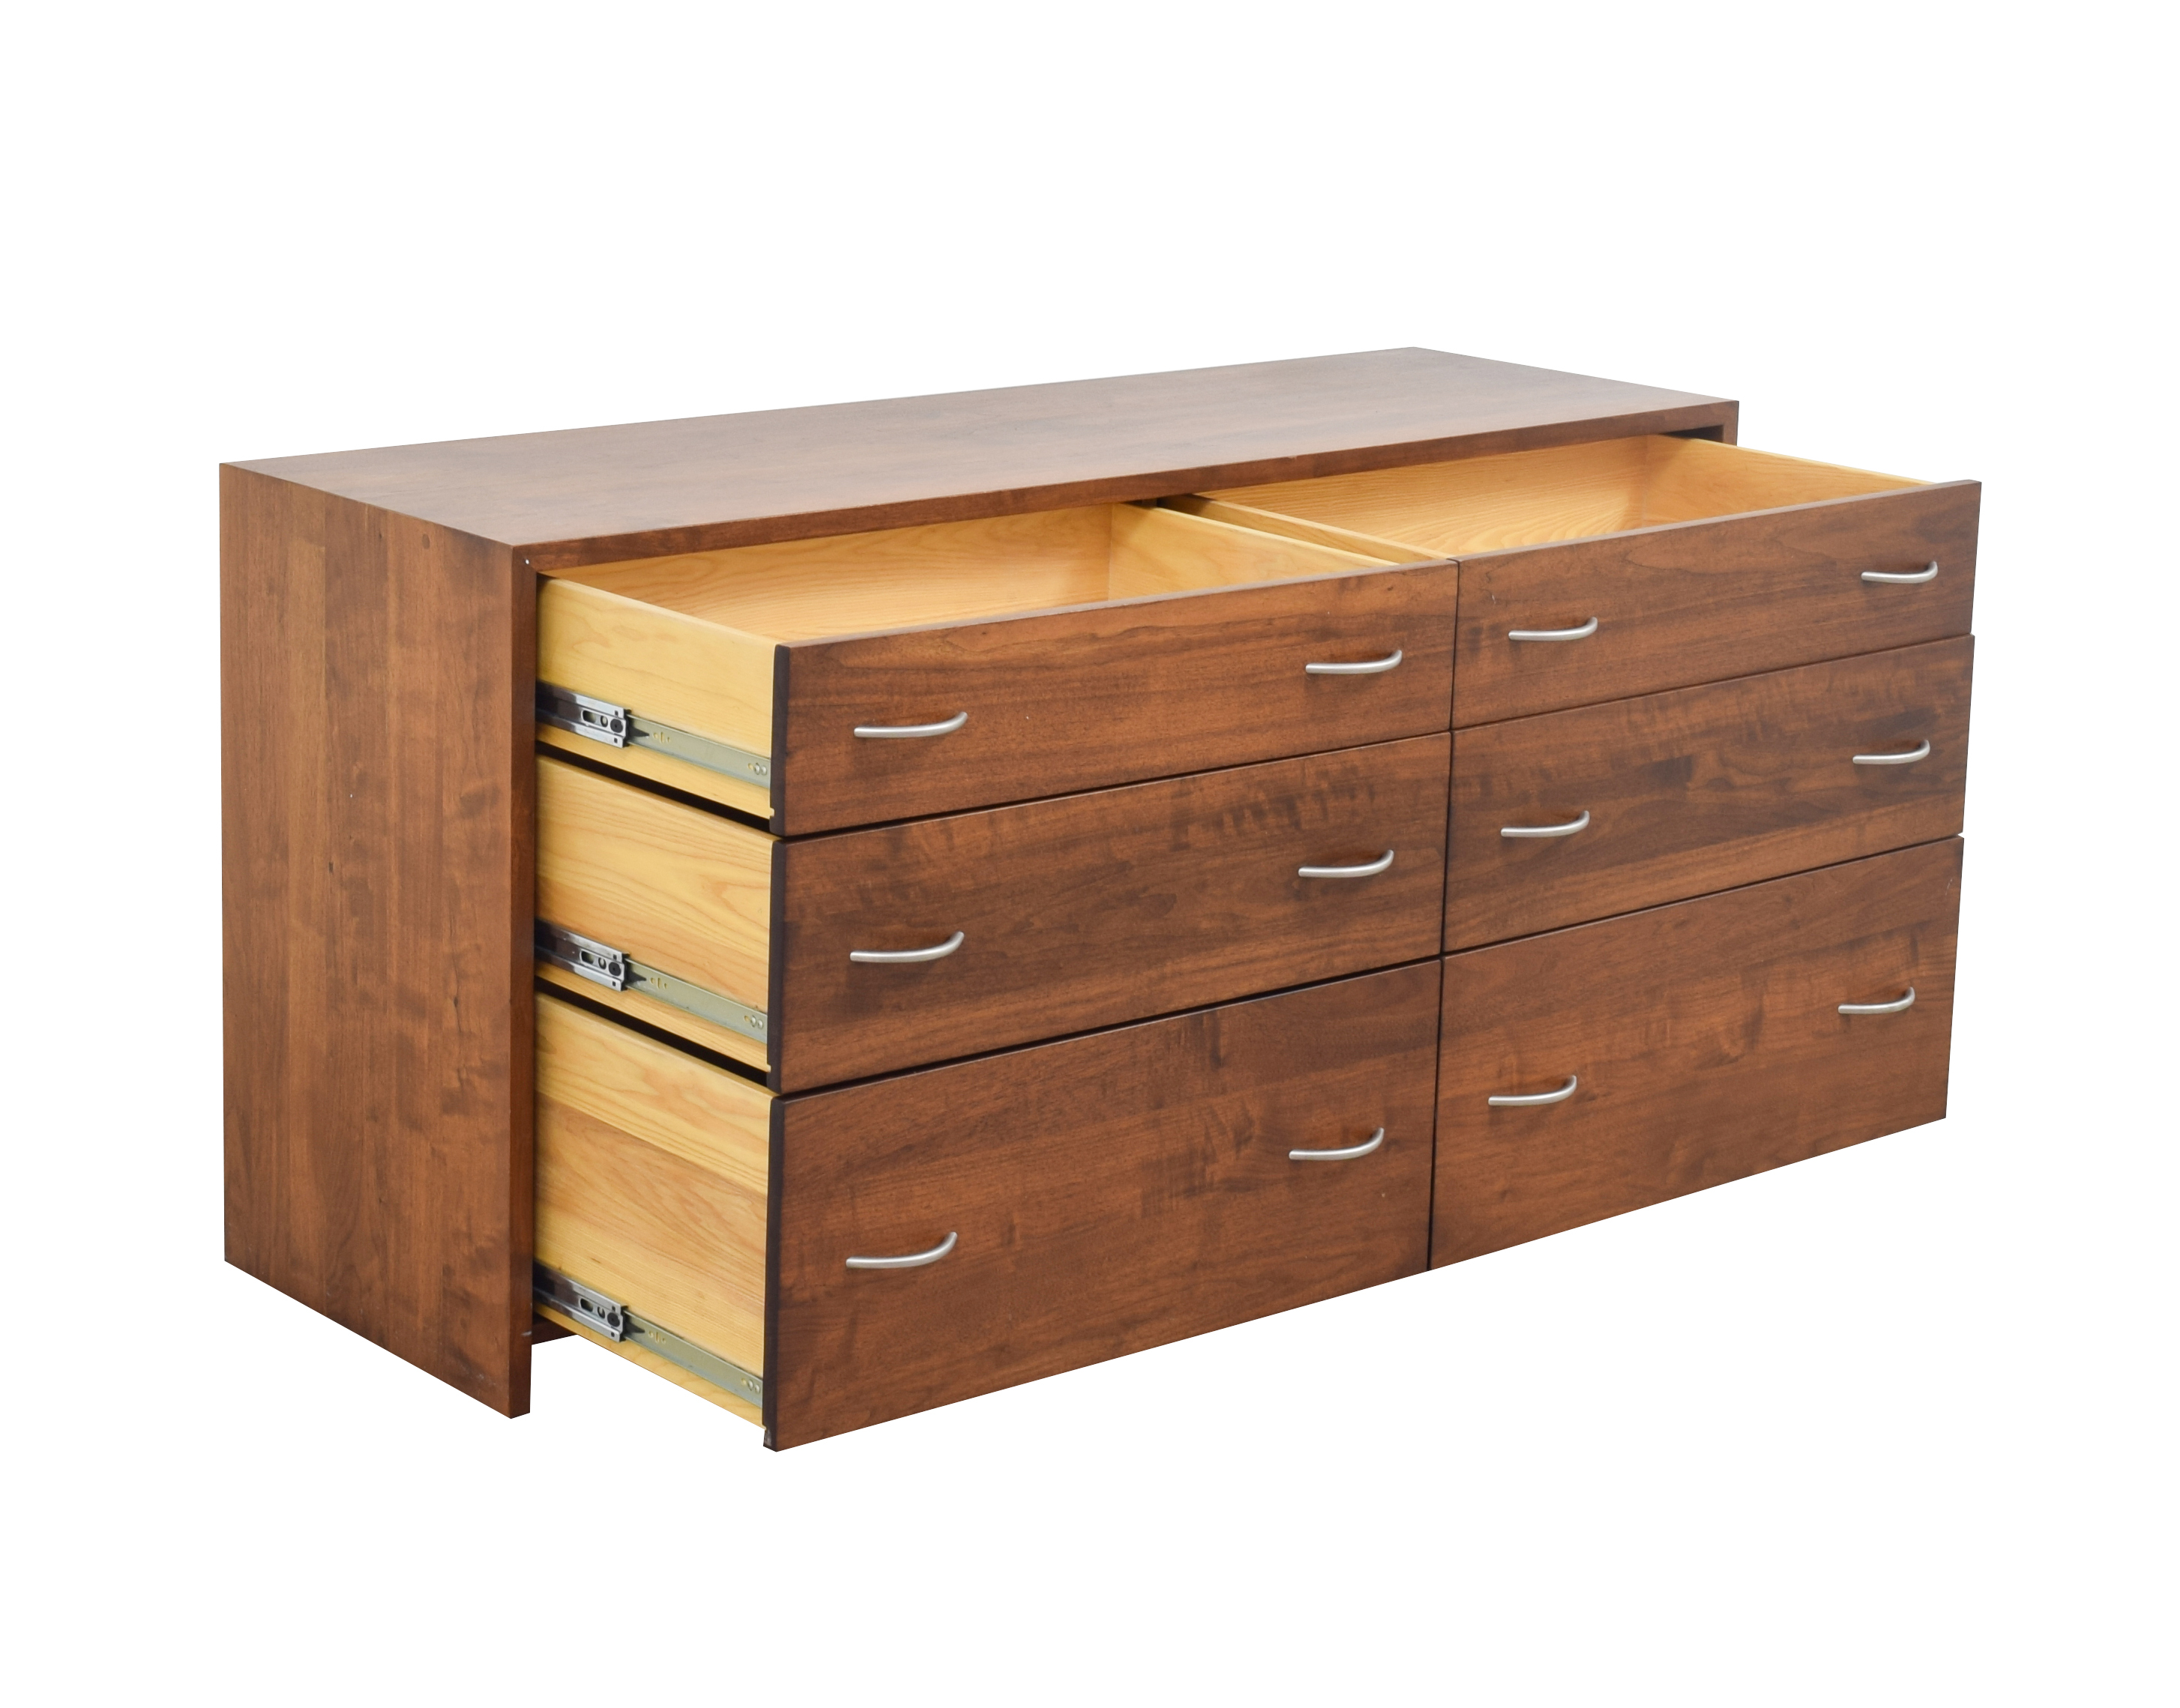 Custom Oak Six-Drawer Dresser Dark Wood